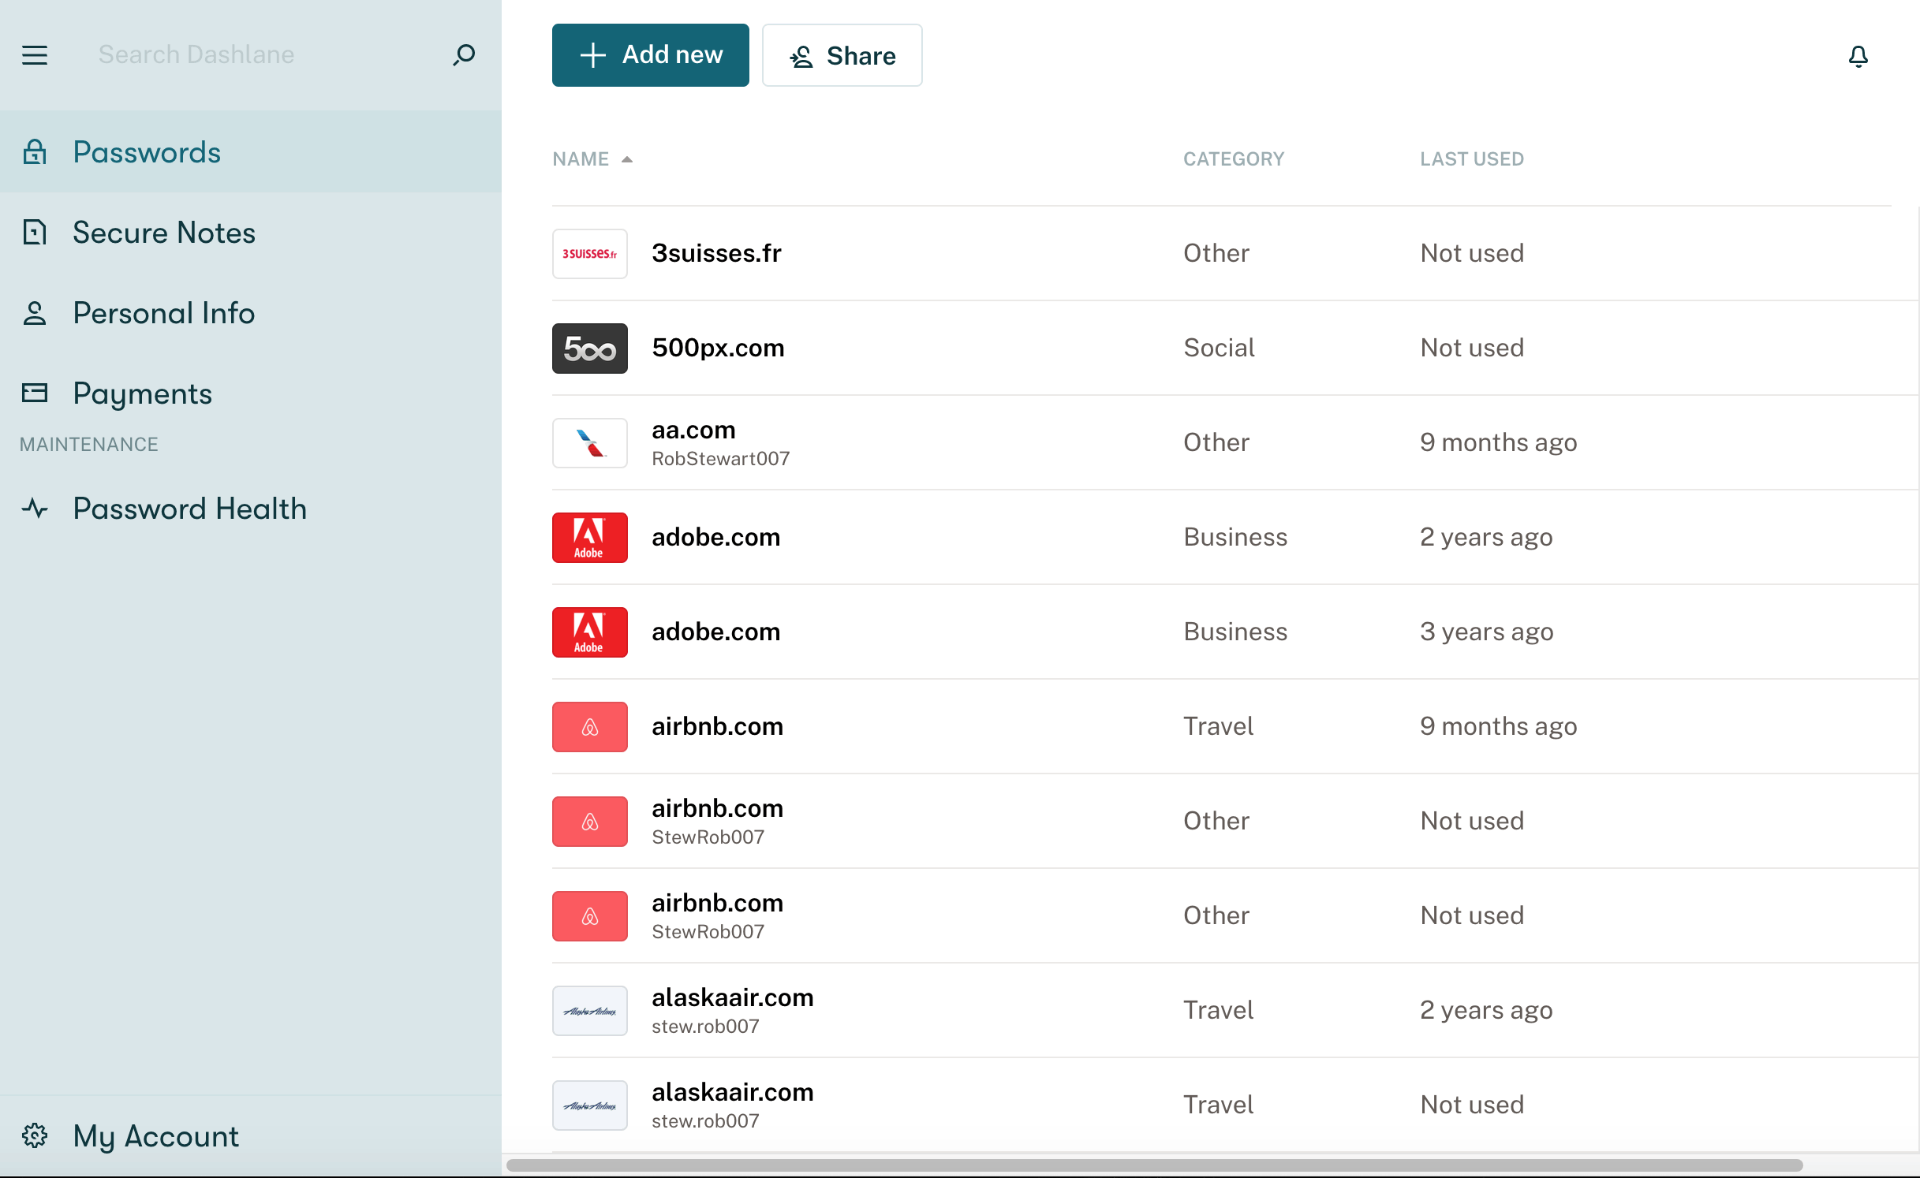 Learn How To Save Passwords With The Dashlane App